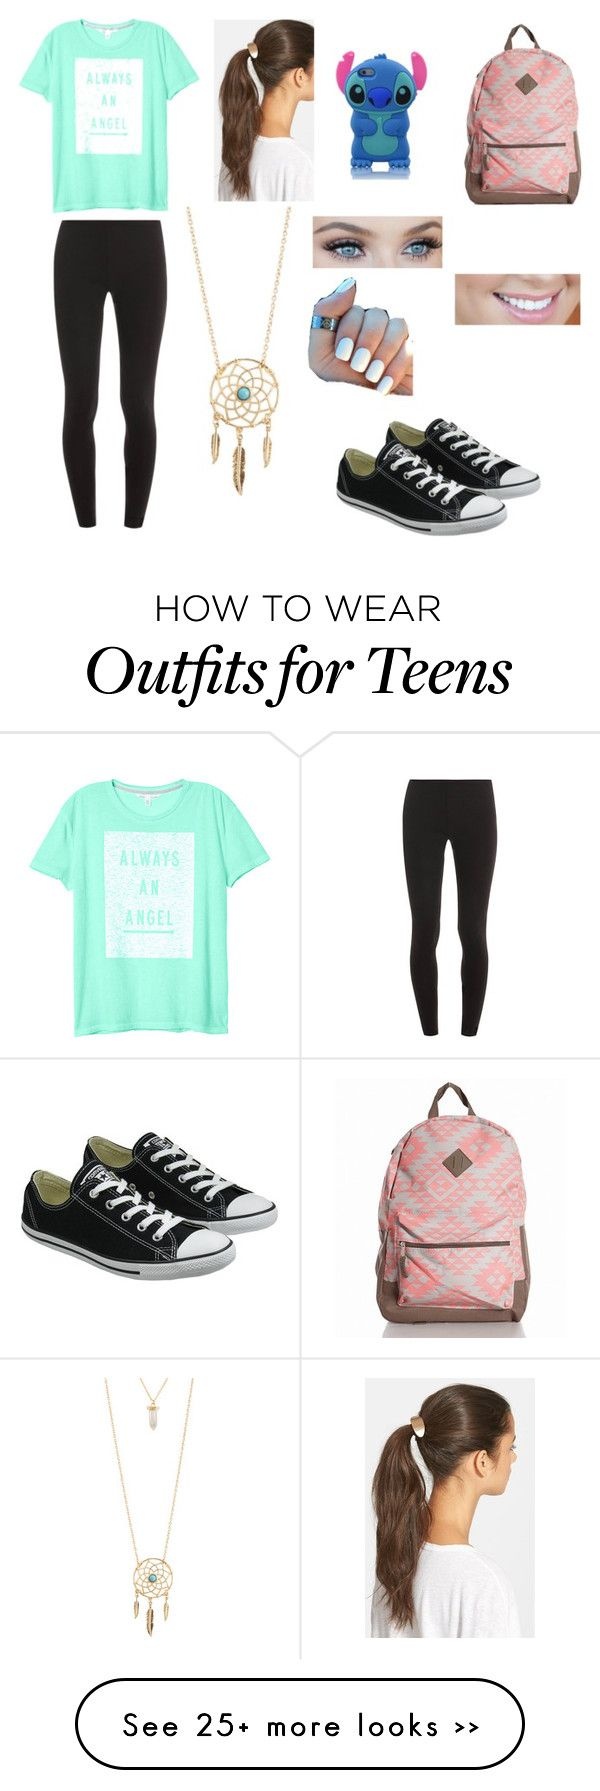 """""""Back To School Outfit For Teens!"""" by pinktropicalparadise on Polyvore featuring Converse, Splendid, Victoria's Secret, Tasha and Aéropostale"""